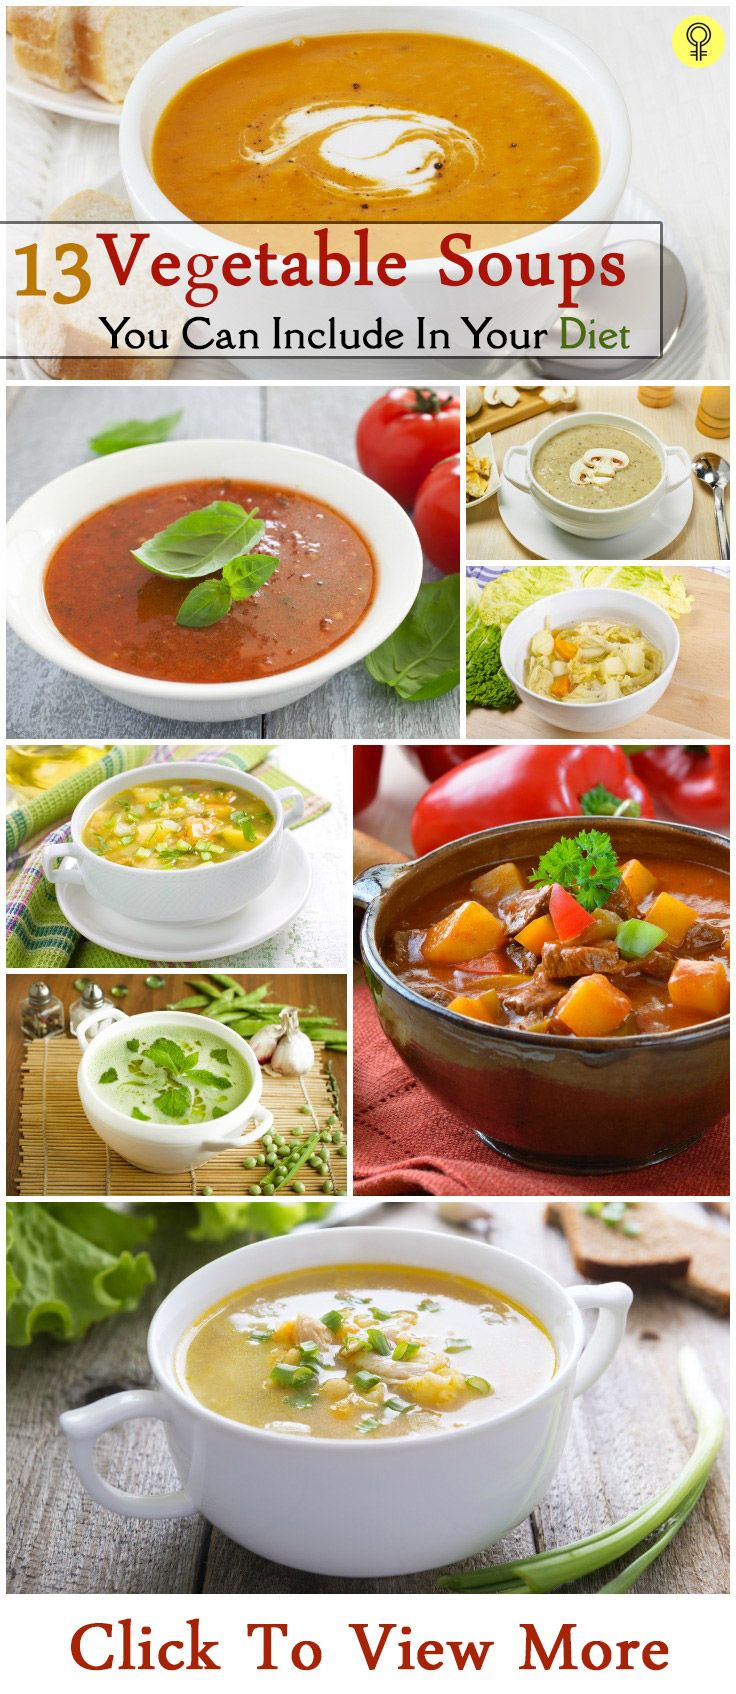 Planning to lose weight within a short time? Then the best way to do it is to go on a soup diet. A seven-day soup diet will help you lose at least 10 pound easily.